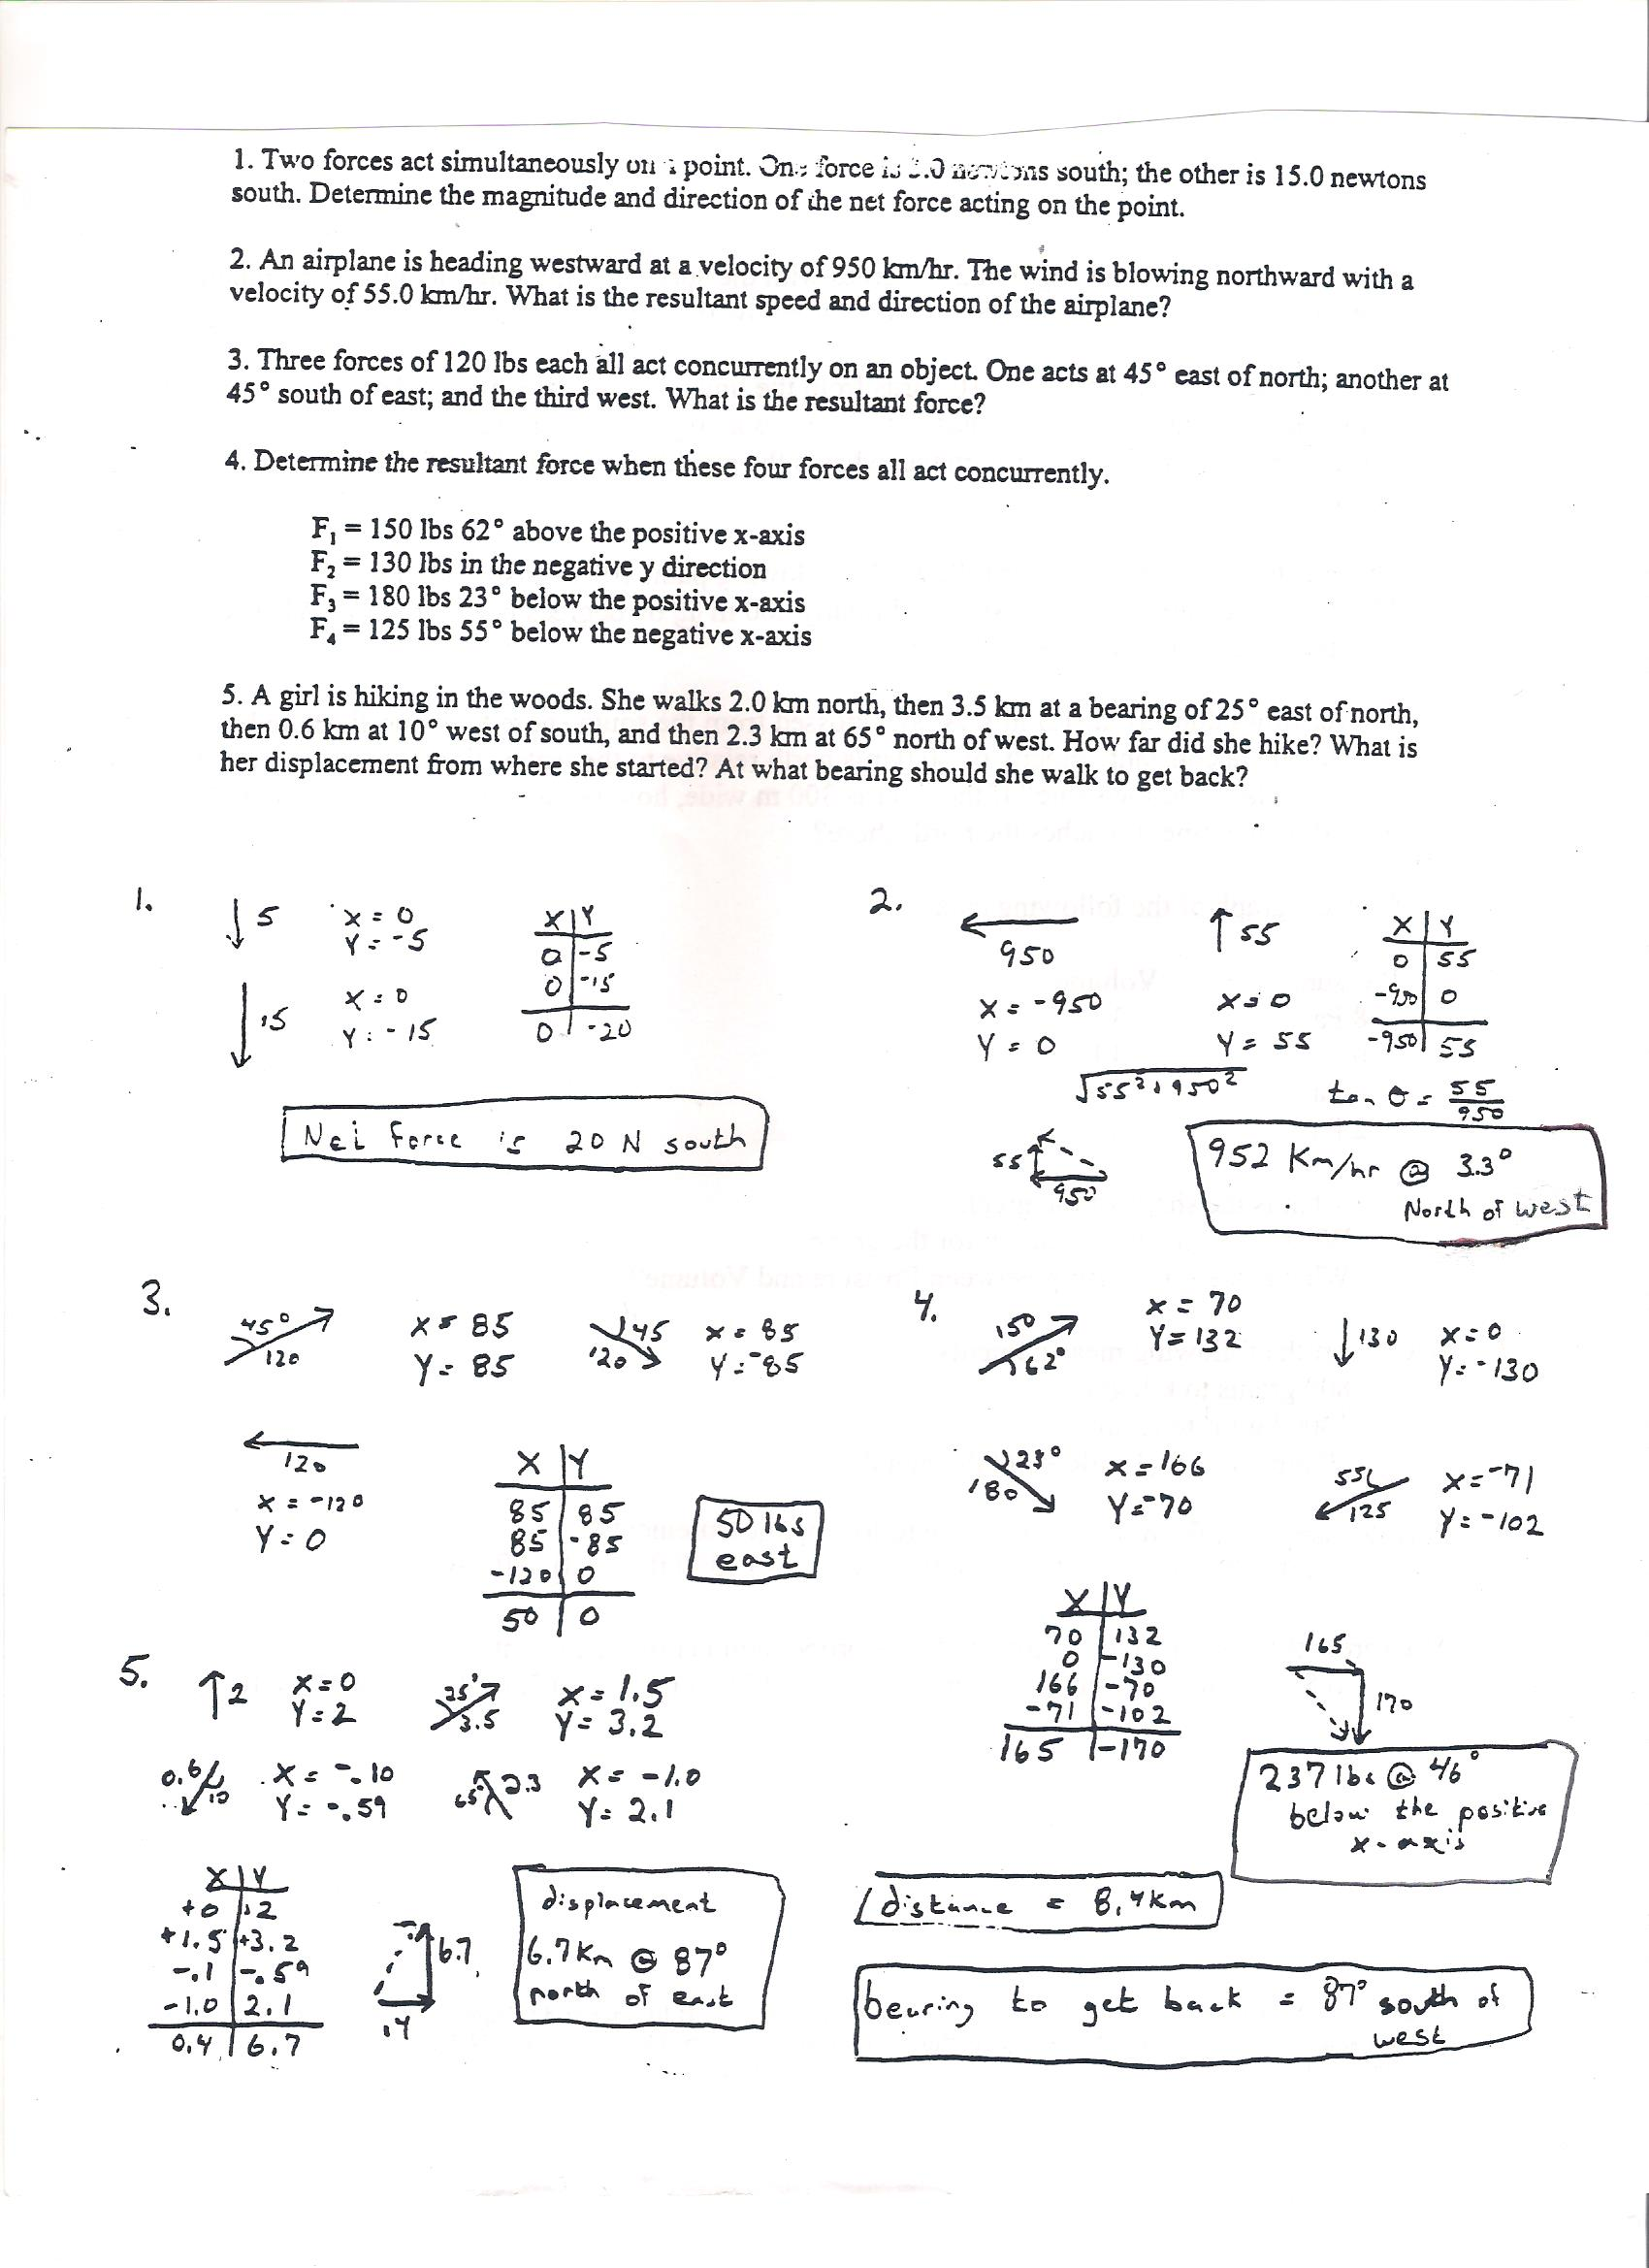 worksheet Dimensional Analysis Problems Worksheet home arthur l johnson high school dimensional analysis worksheet